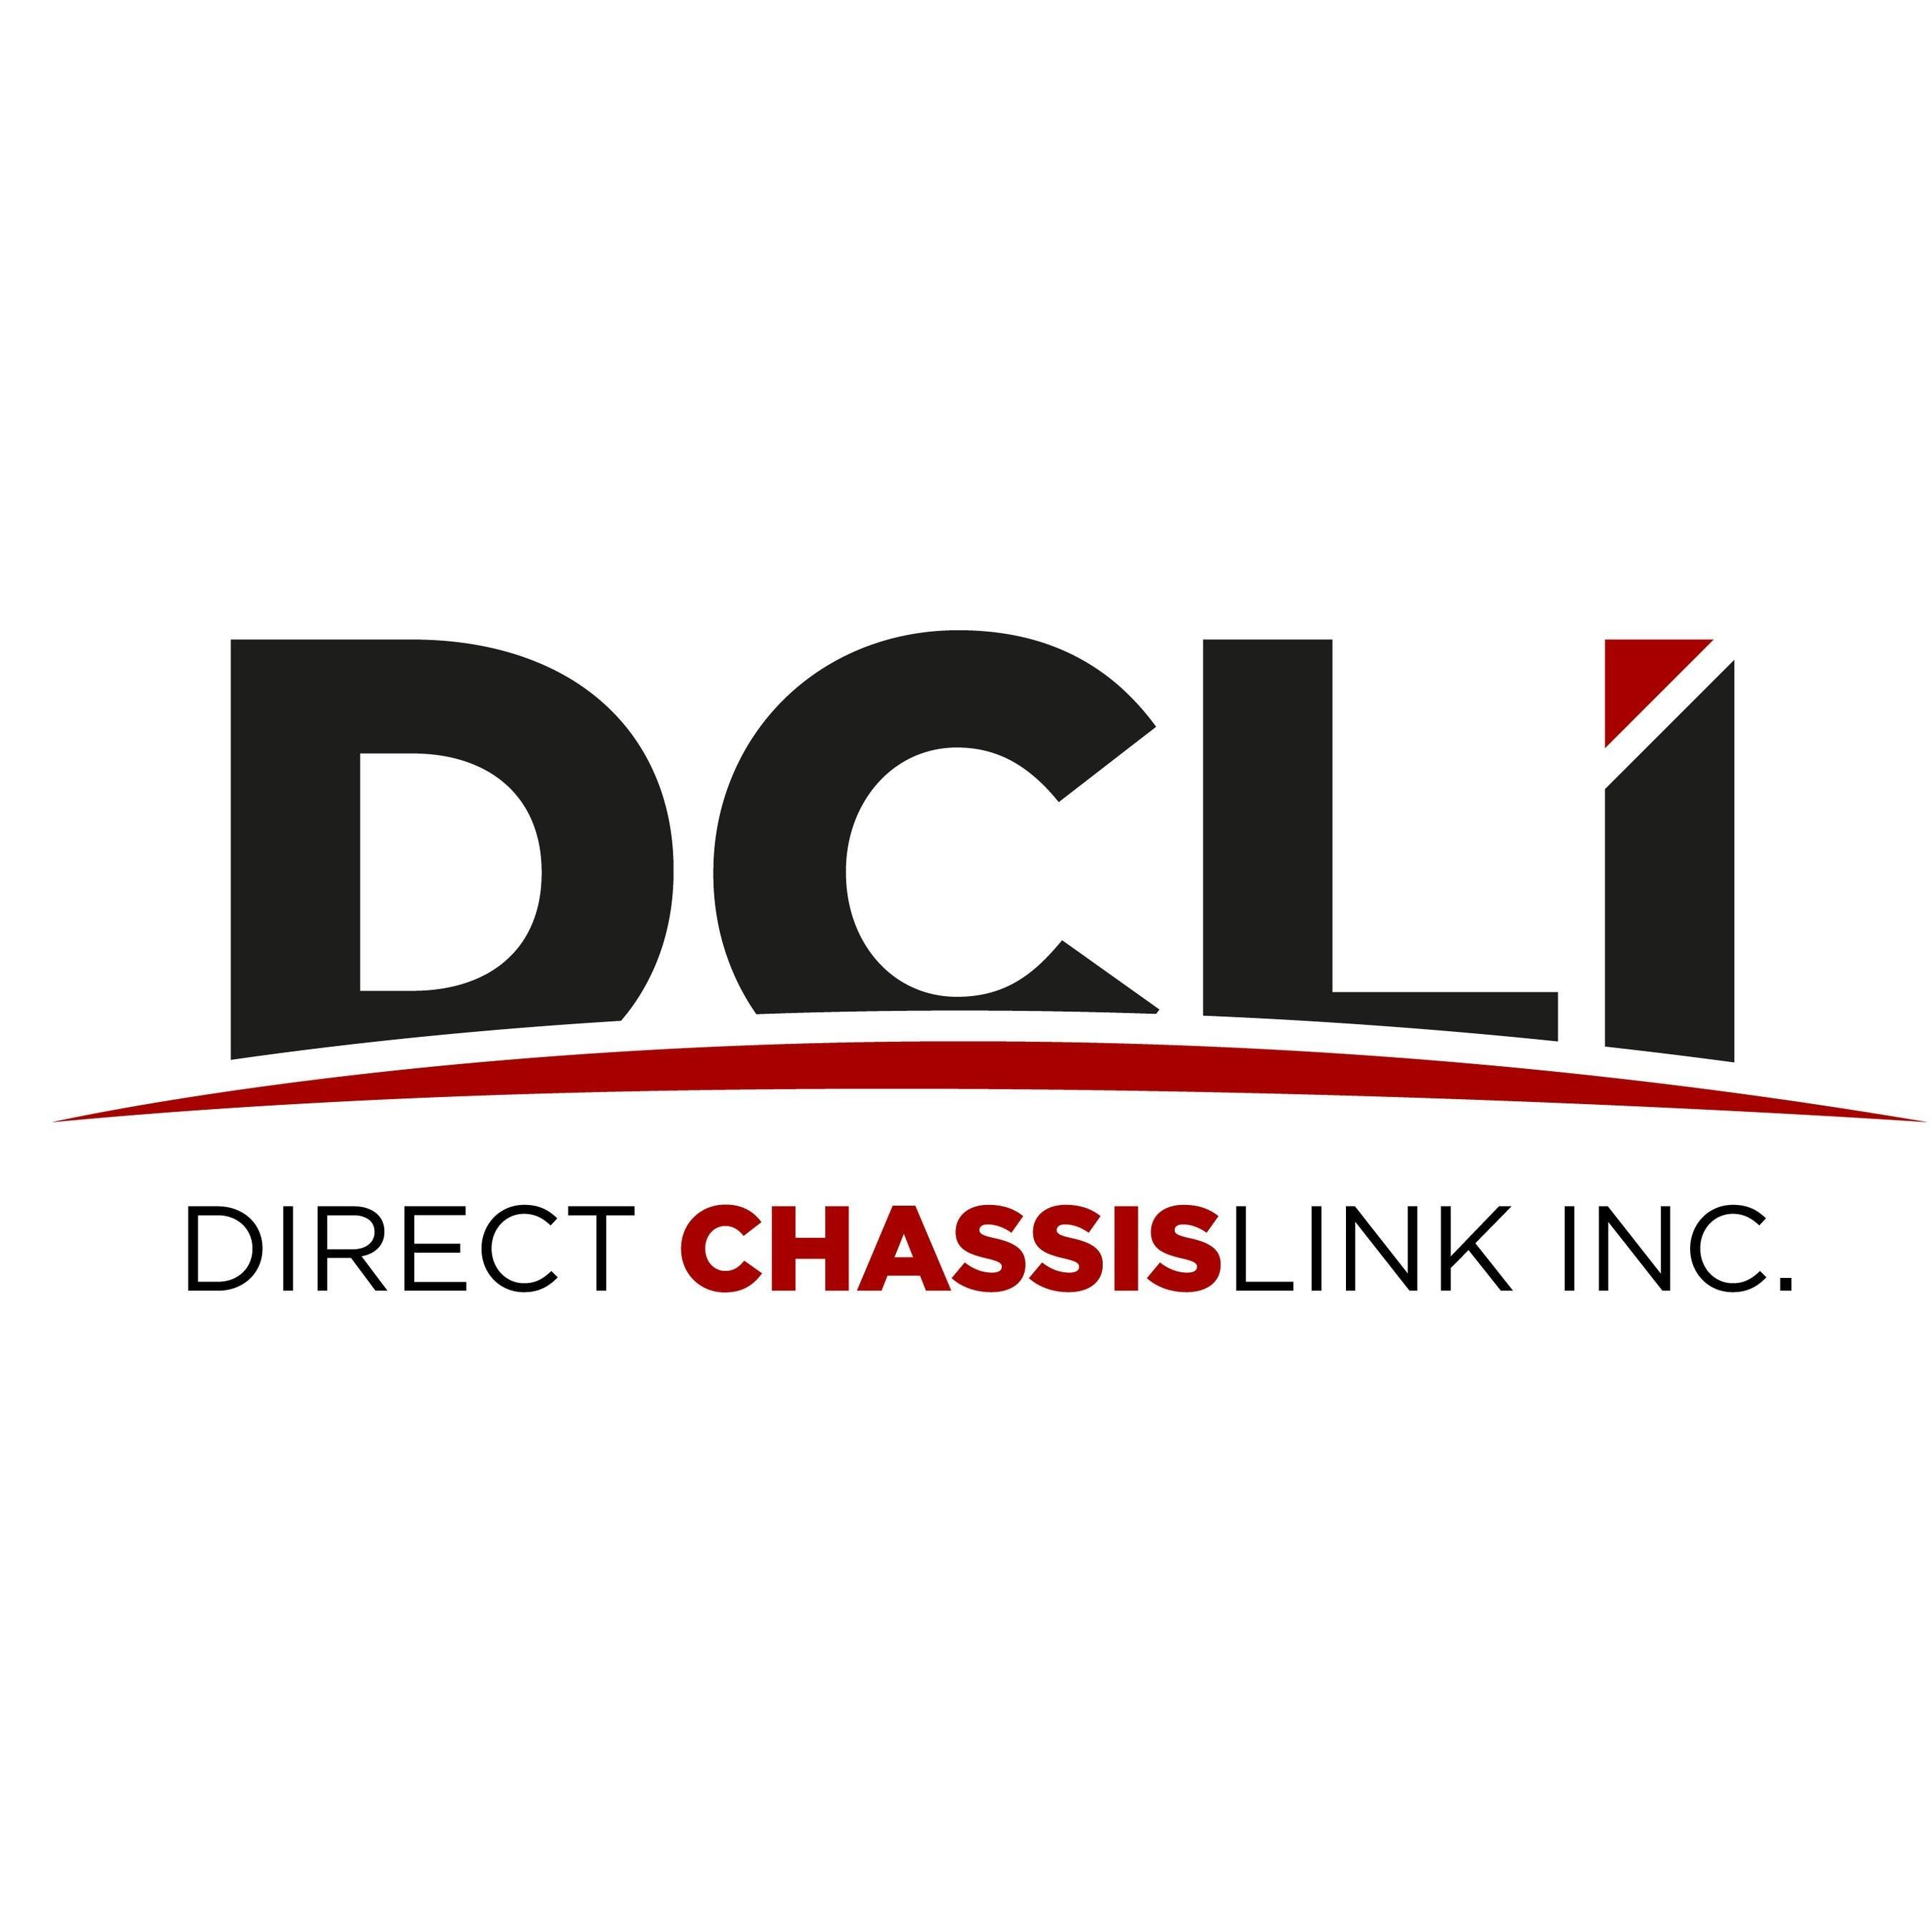 Direct ChassisLink company logo